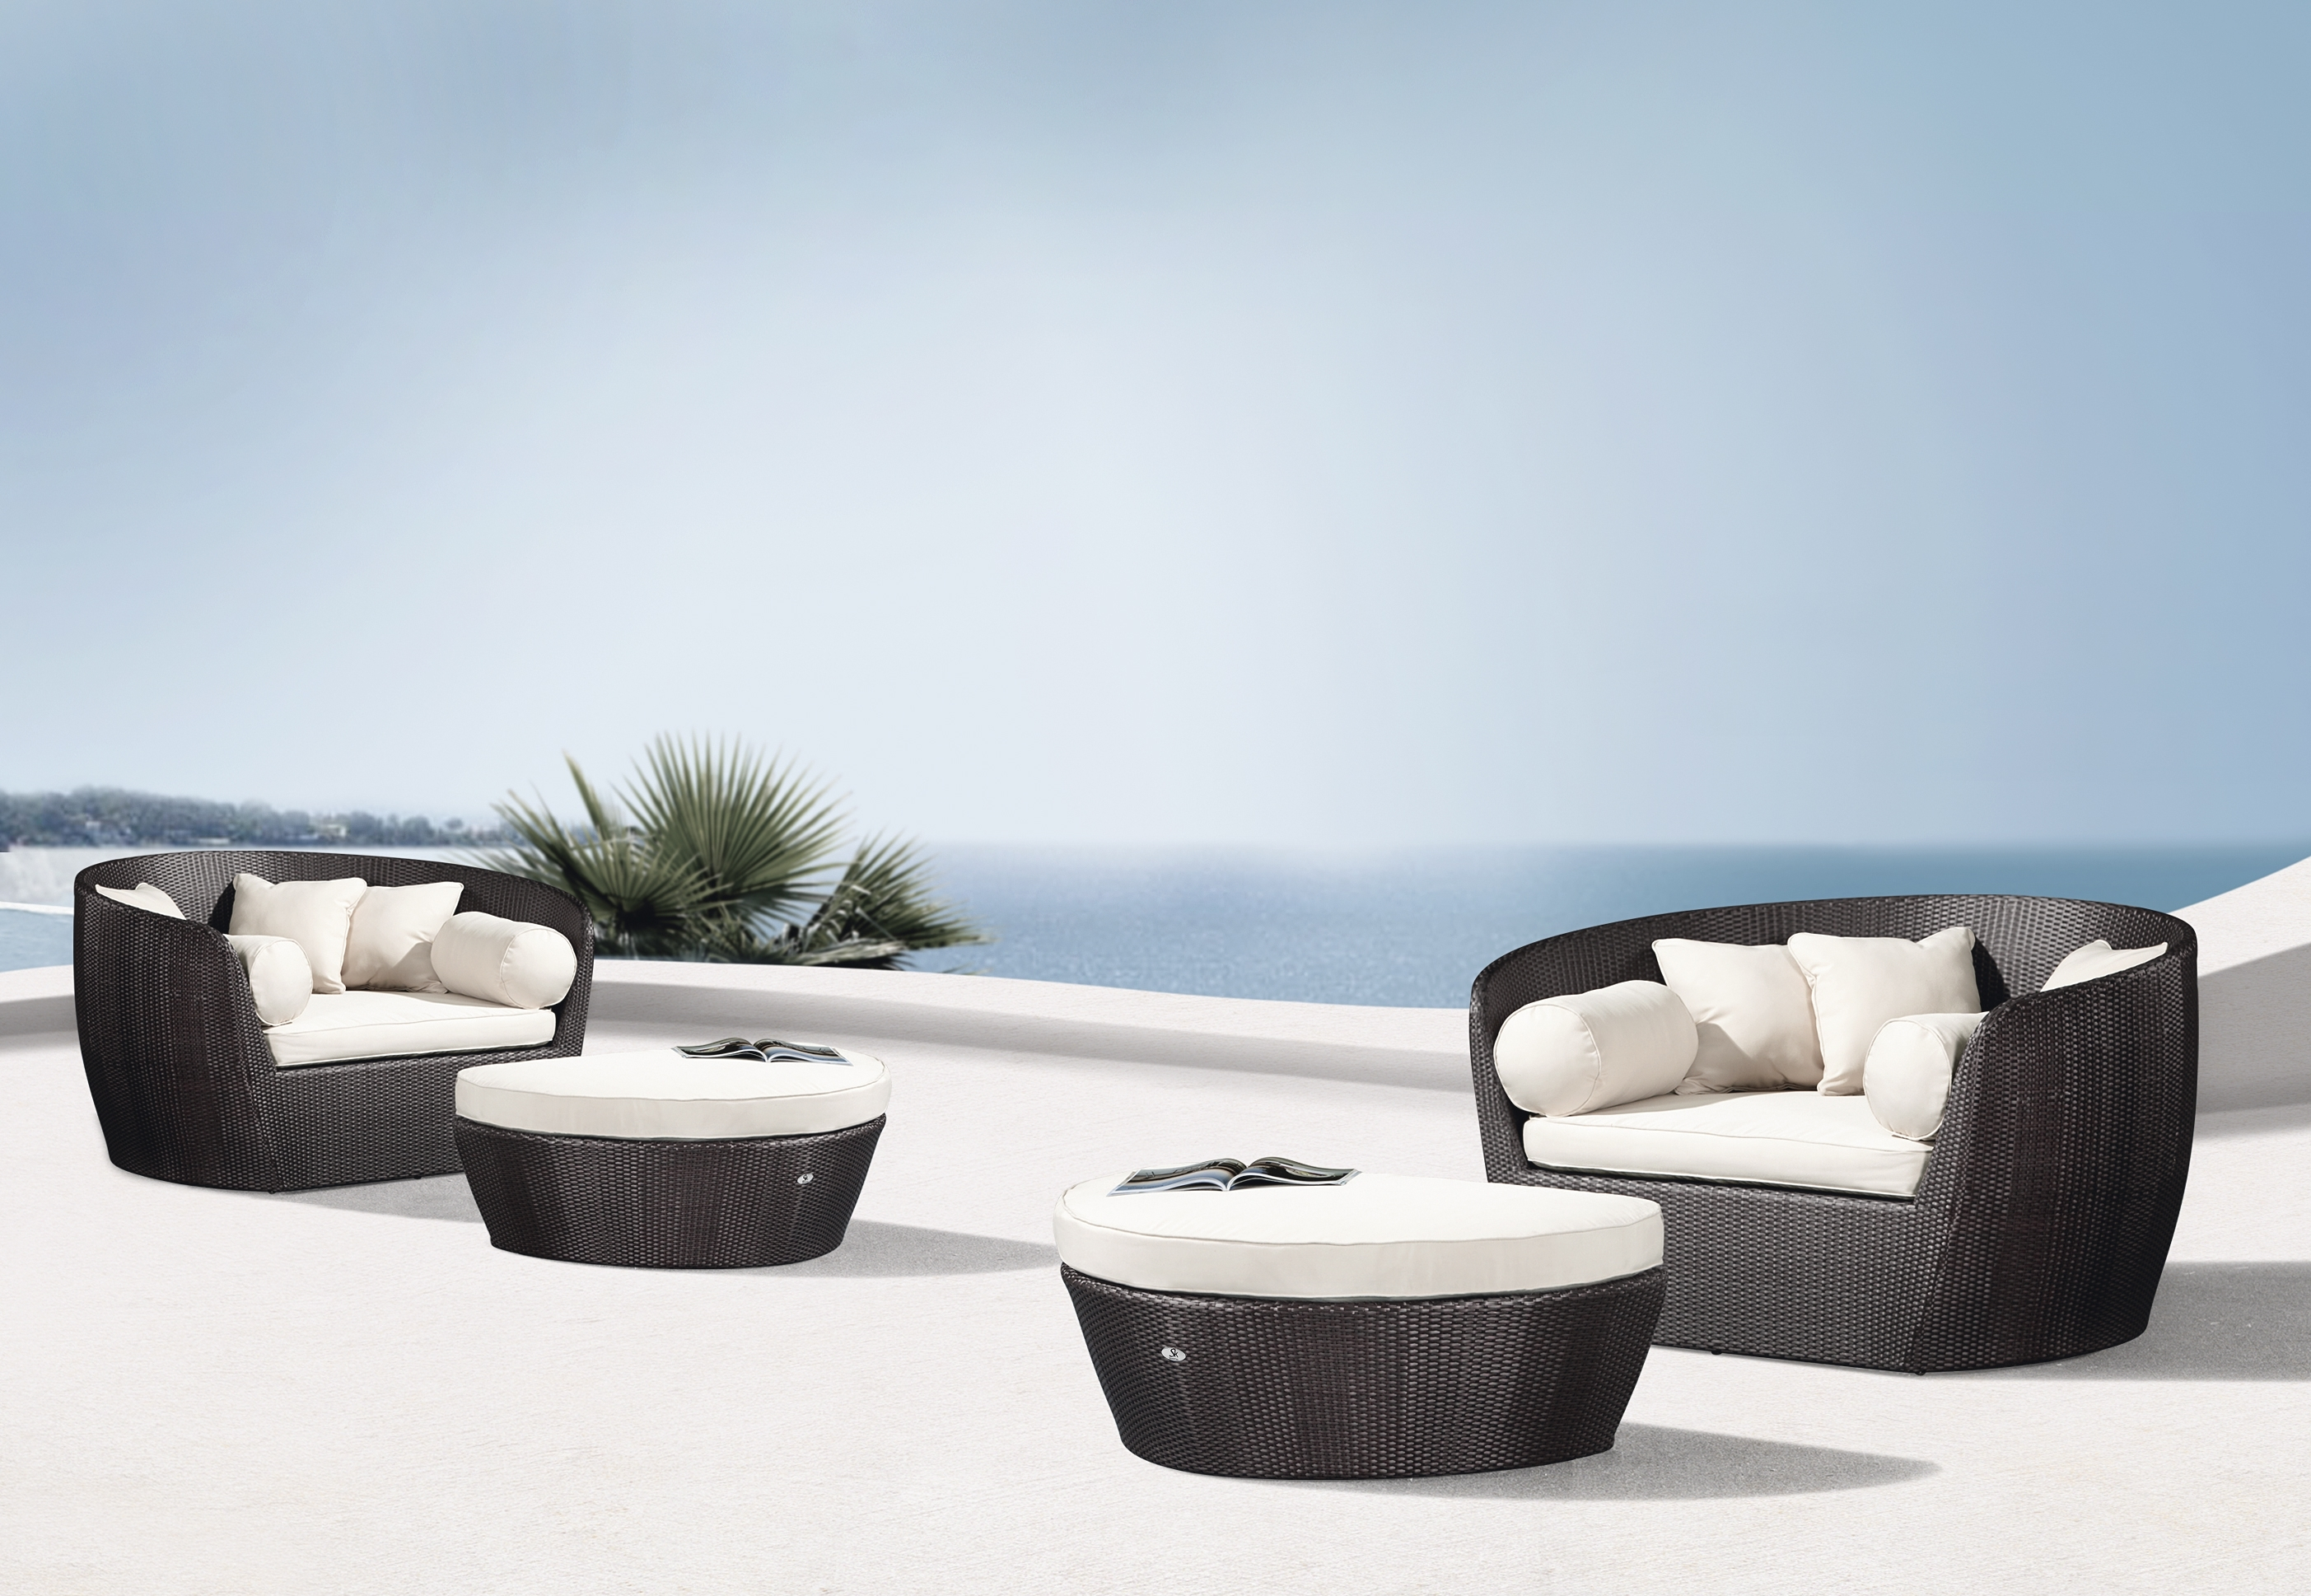 Furniture Enchanting Outdoor Furniture Design With Nice Walmart Throughout Modern Outdoor Lounge Furniture Best Modern Outdoor Lounge Furniture